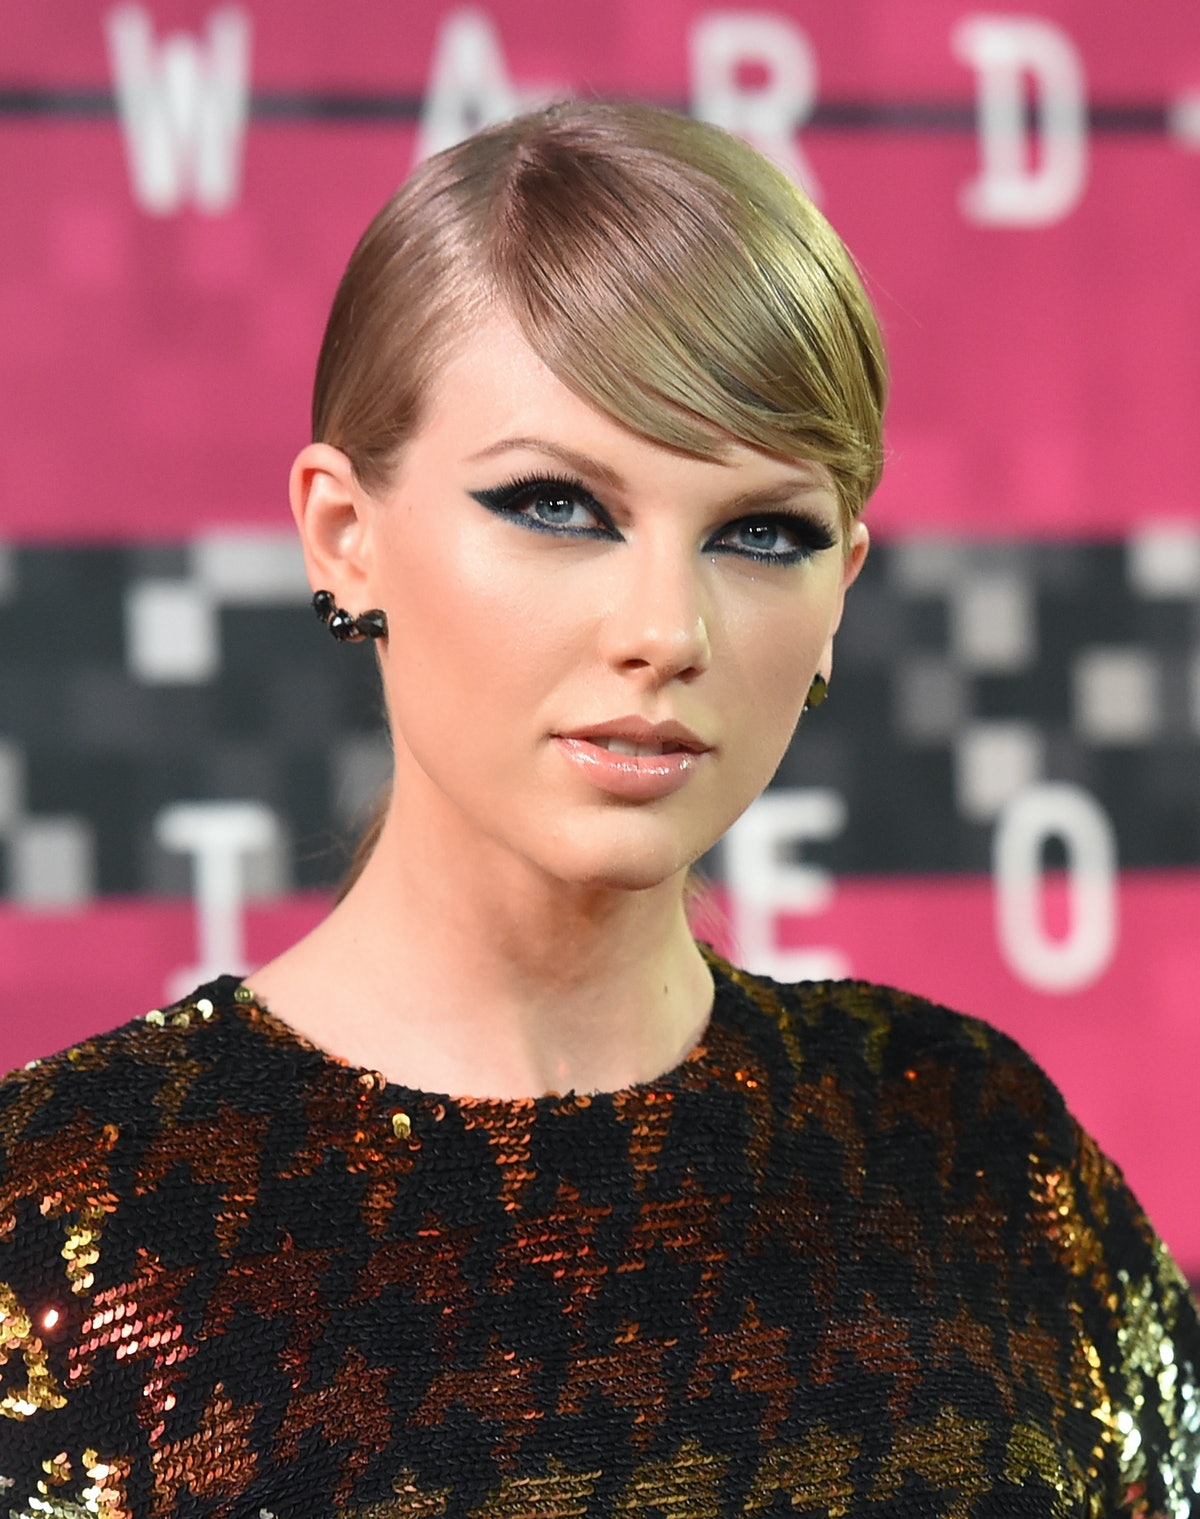 What Taylor Swift's Court Victory Could Mean For Women